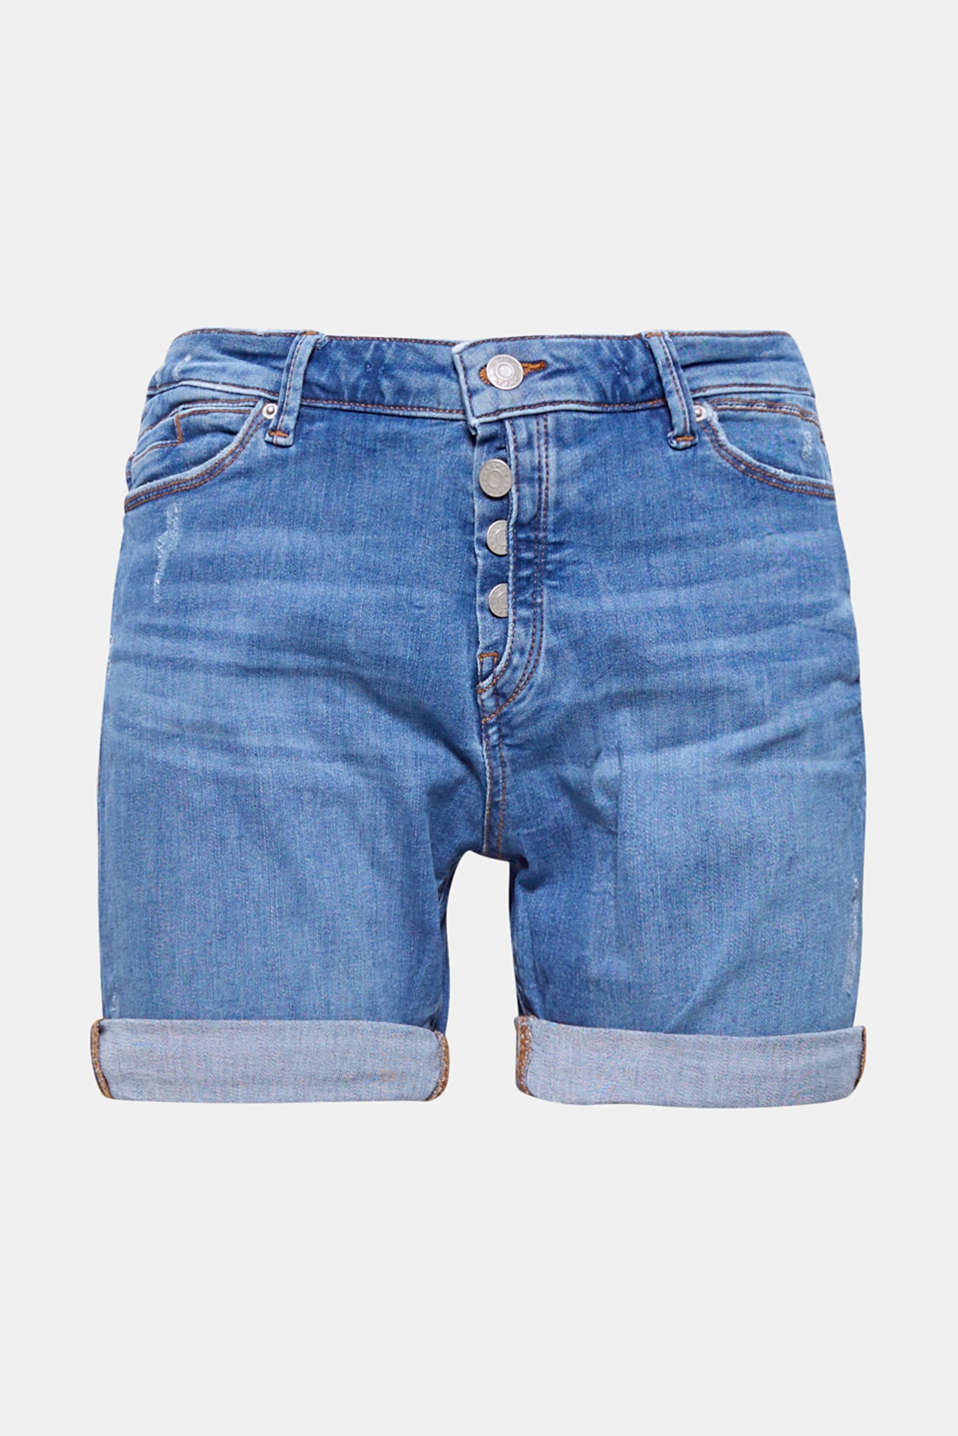 A cool pair of summer shorts composed of lightweight denim with vintage and wrinkled effects plus a semi-concealed button placket.